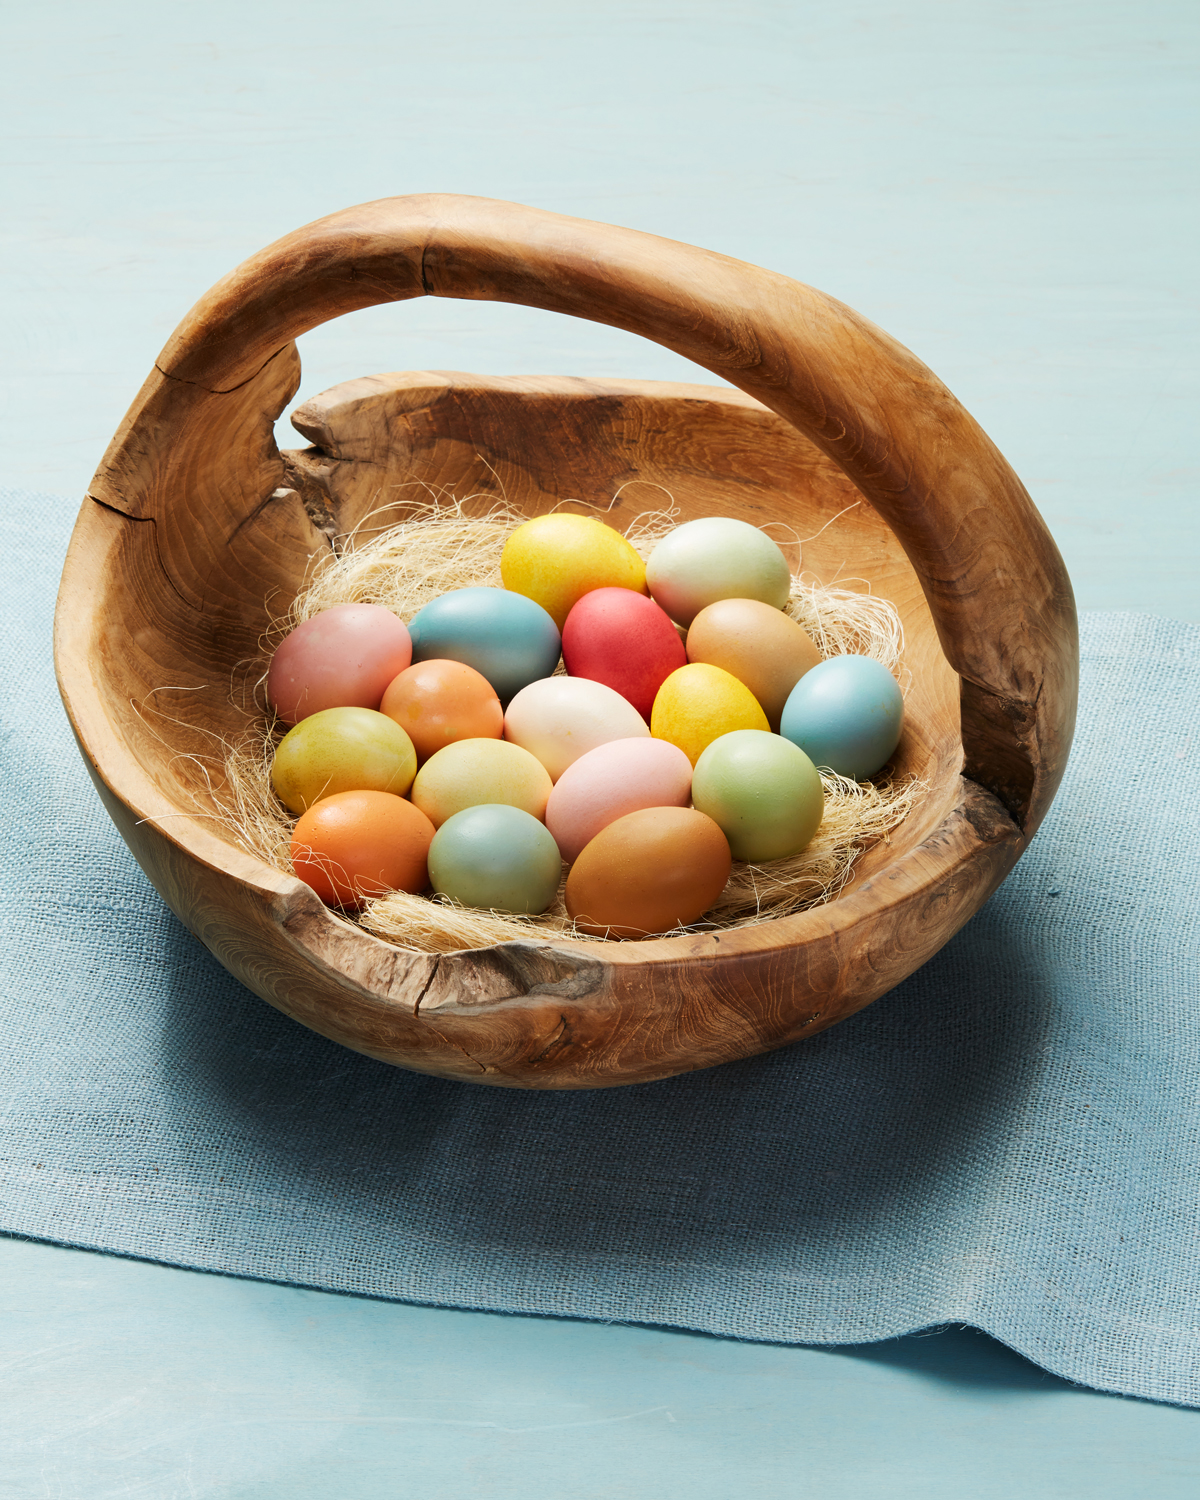 naturally dyed easter eggs in a wooden basket